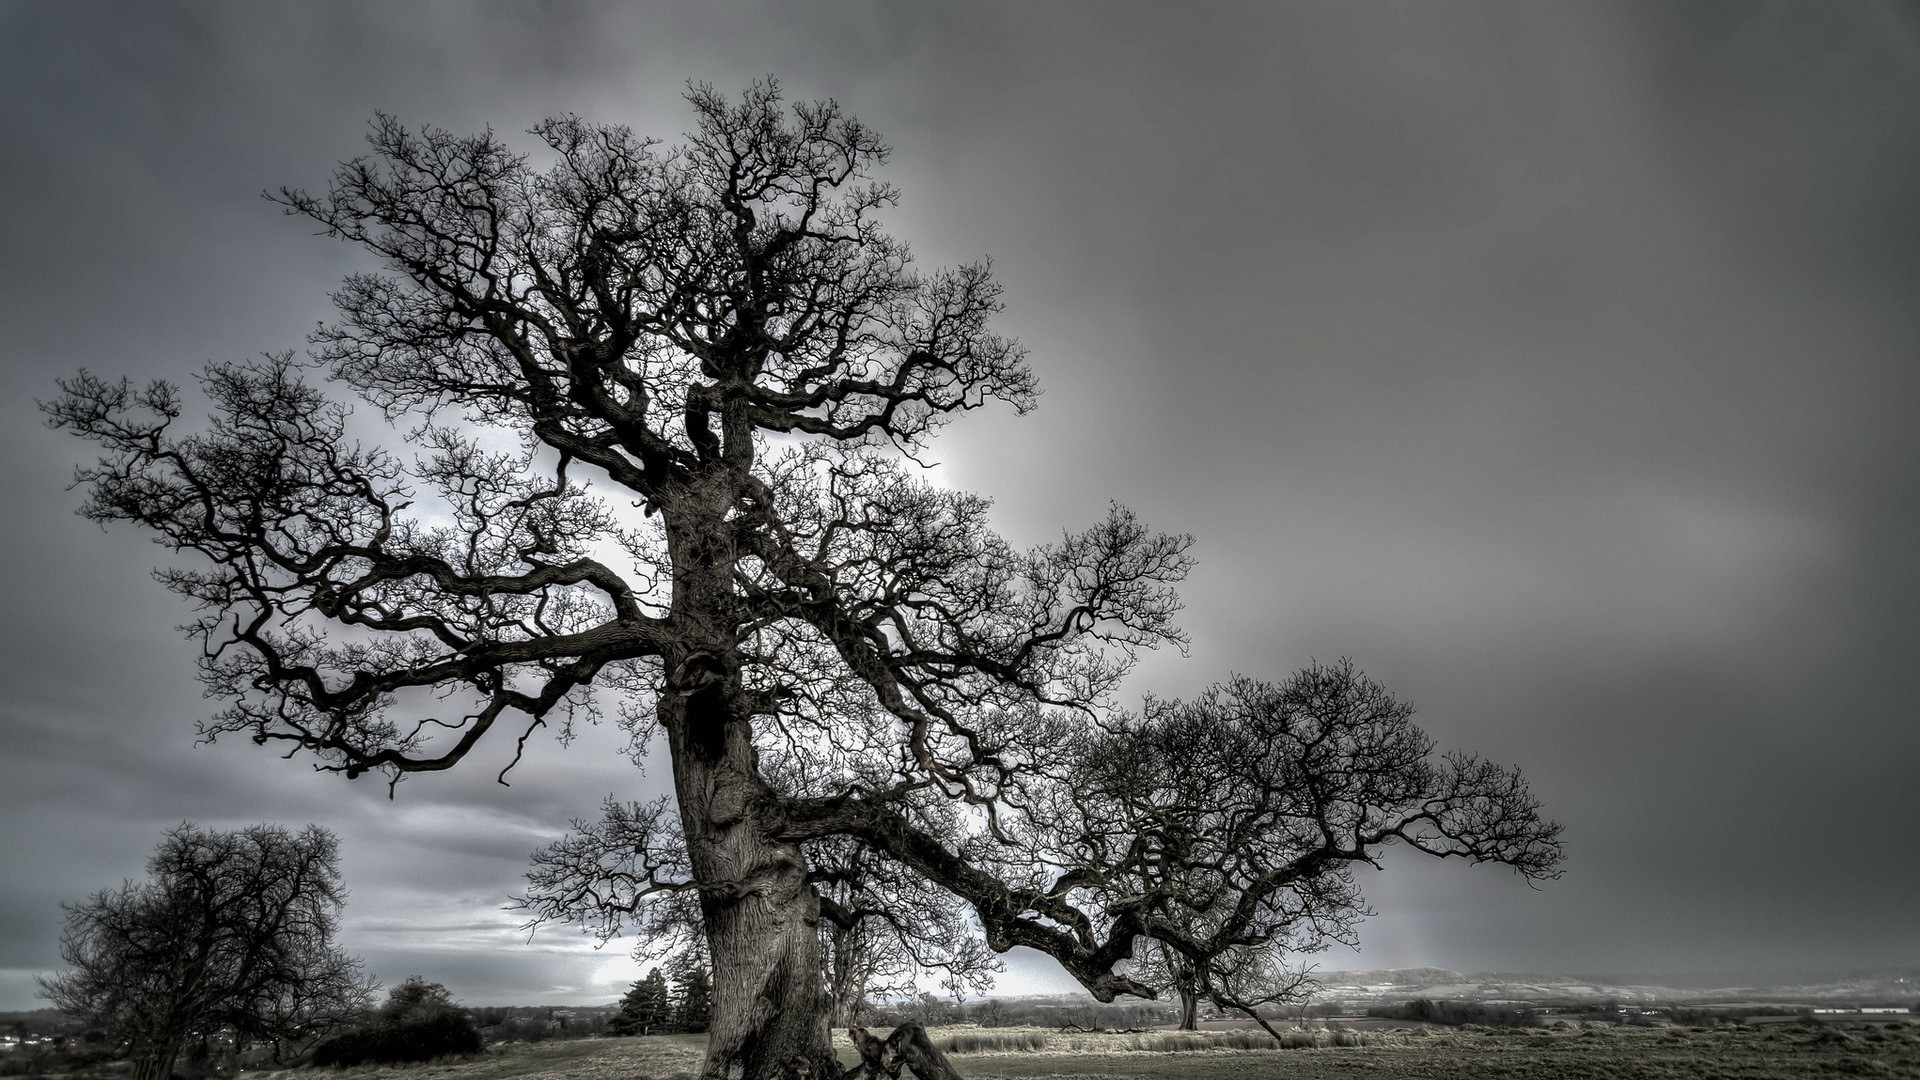 Res: 1920x1080, Grey Sky Gnarled Tree Fields Spectacular Forest Wallpaper Mobile